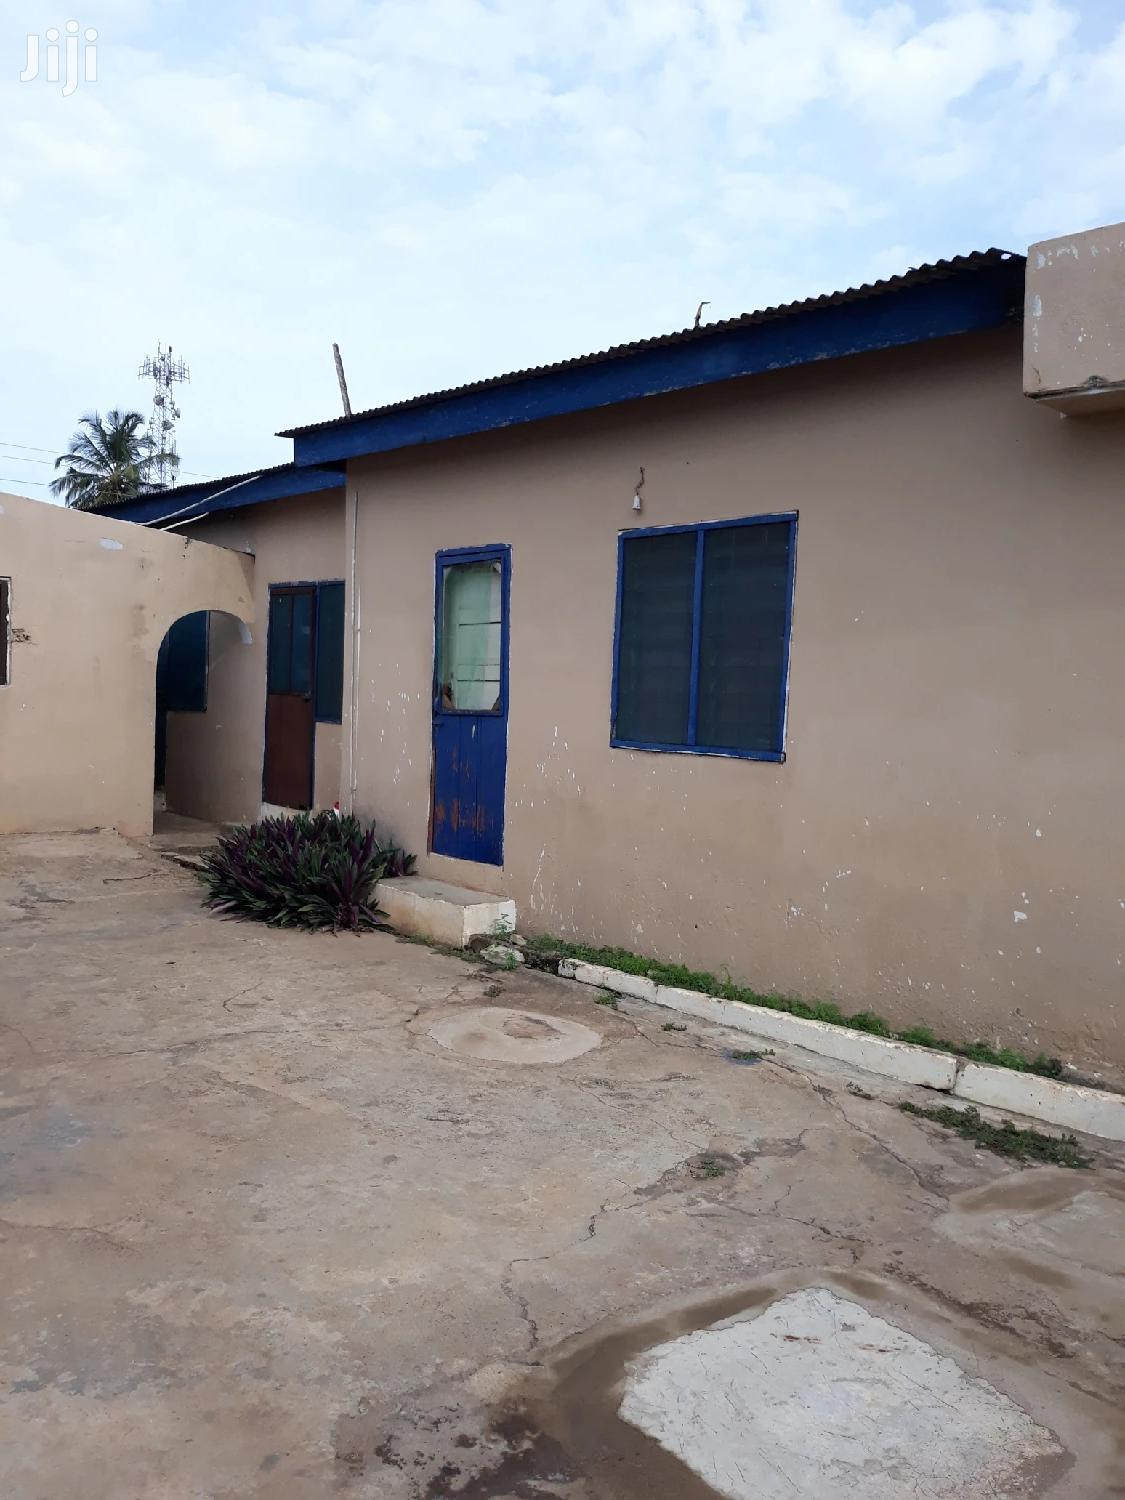 4 Bedroom House For Sale At Madina | Houses & Apartments For Sale for sale in Madina, Greater Accra, Ghana